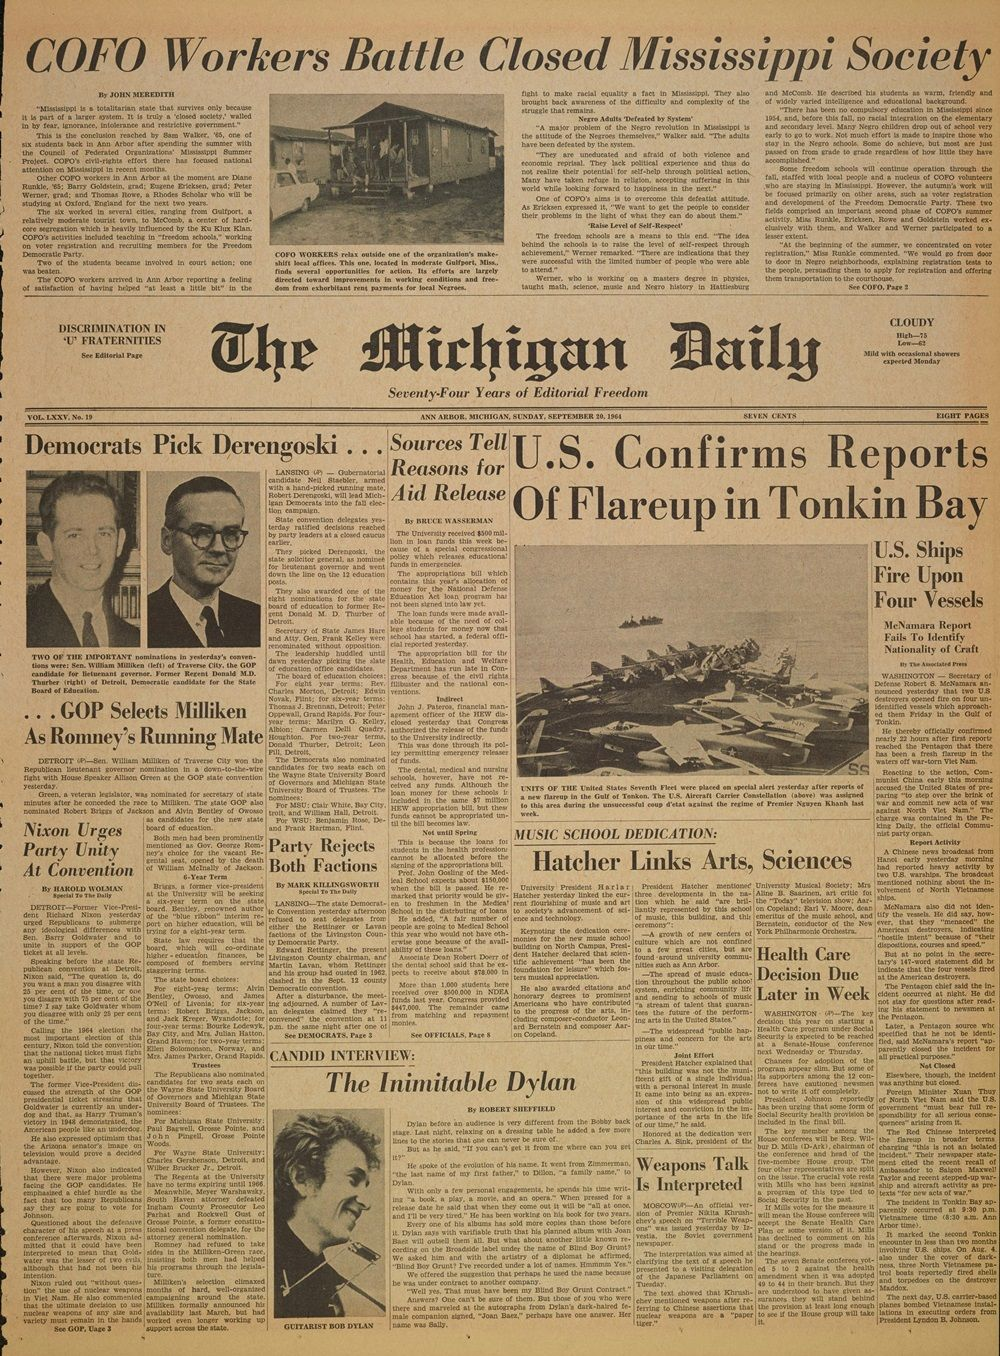 the Michigan daily 1964 Bob Dylan cover story